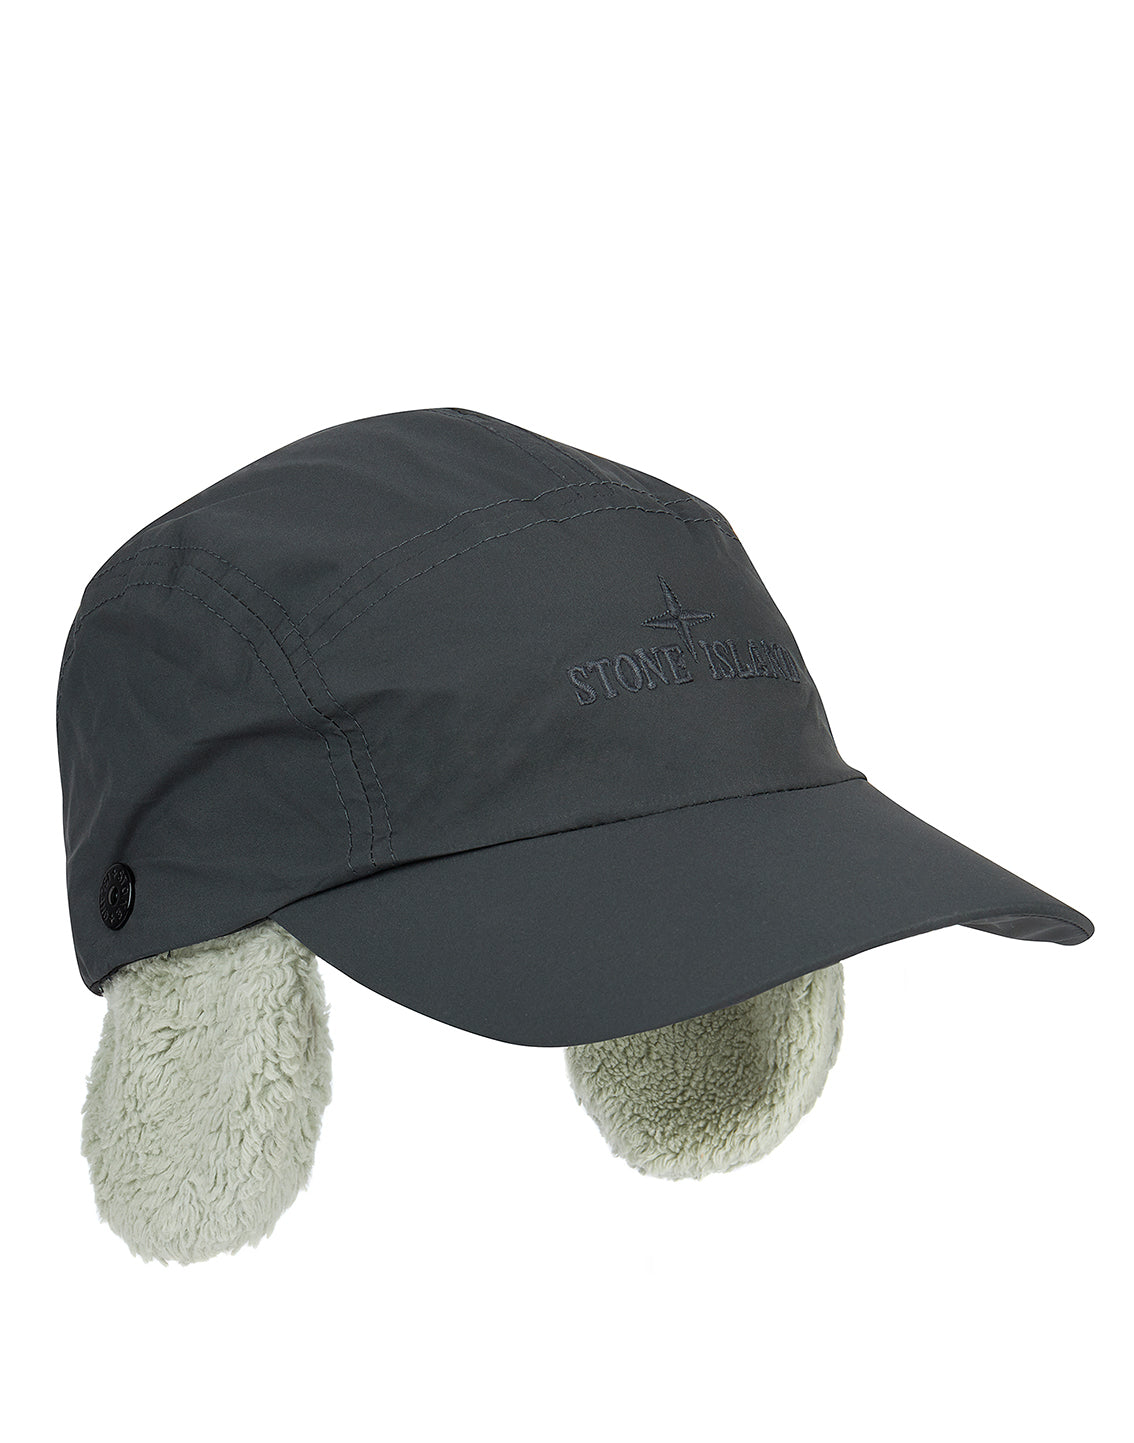 99878 GORE-TEX INFINIUM COTTON TERRY Cap in Dark Grey